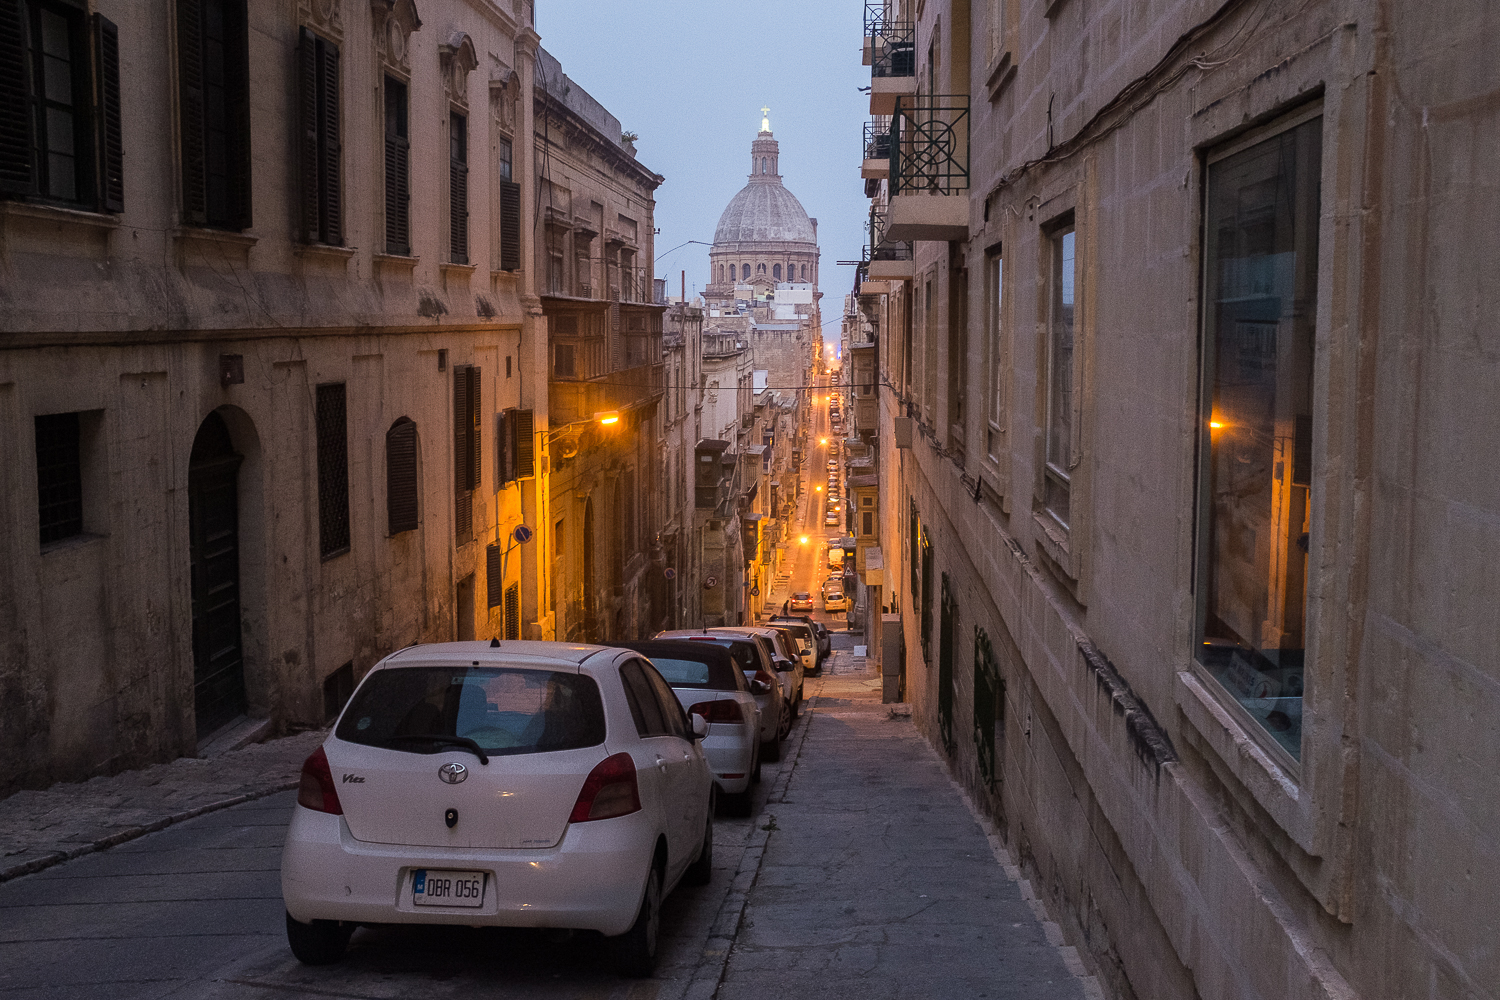 On the streets of Valletta